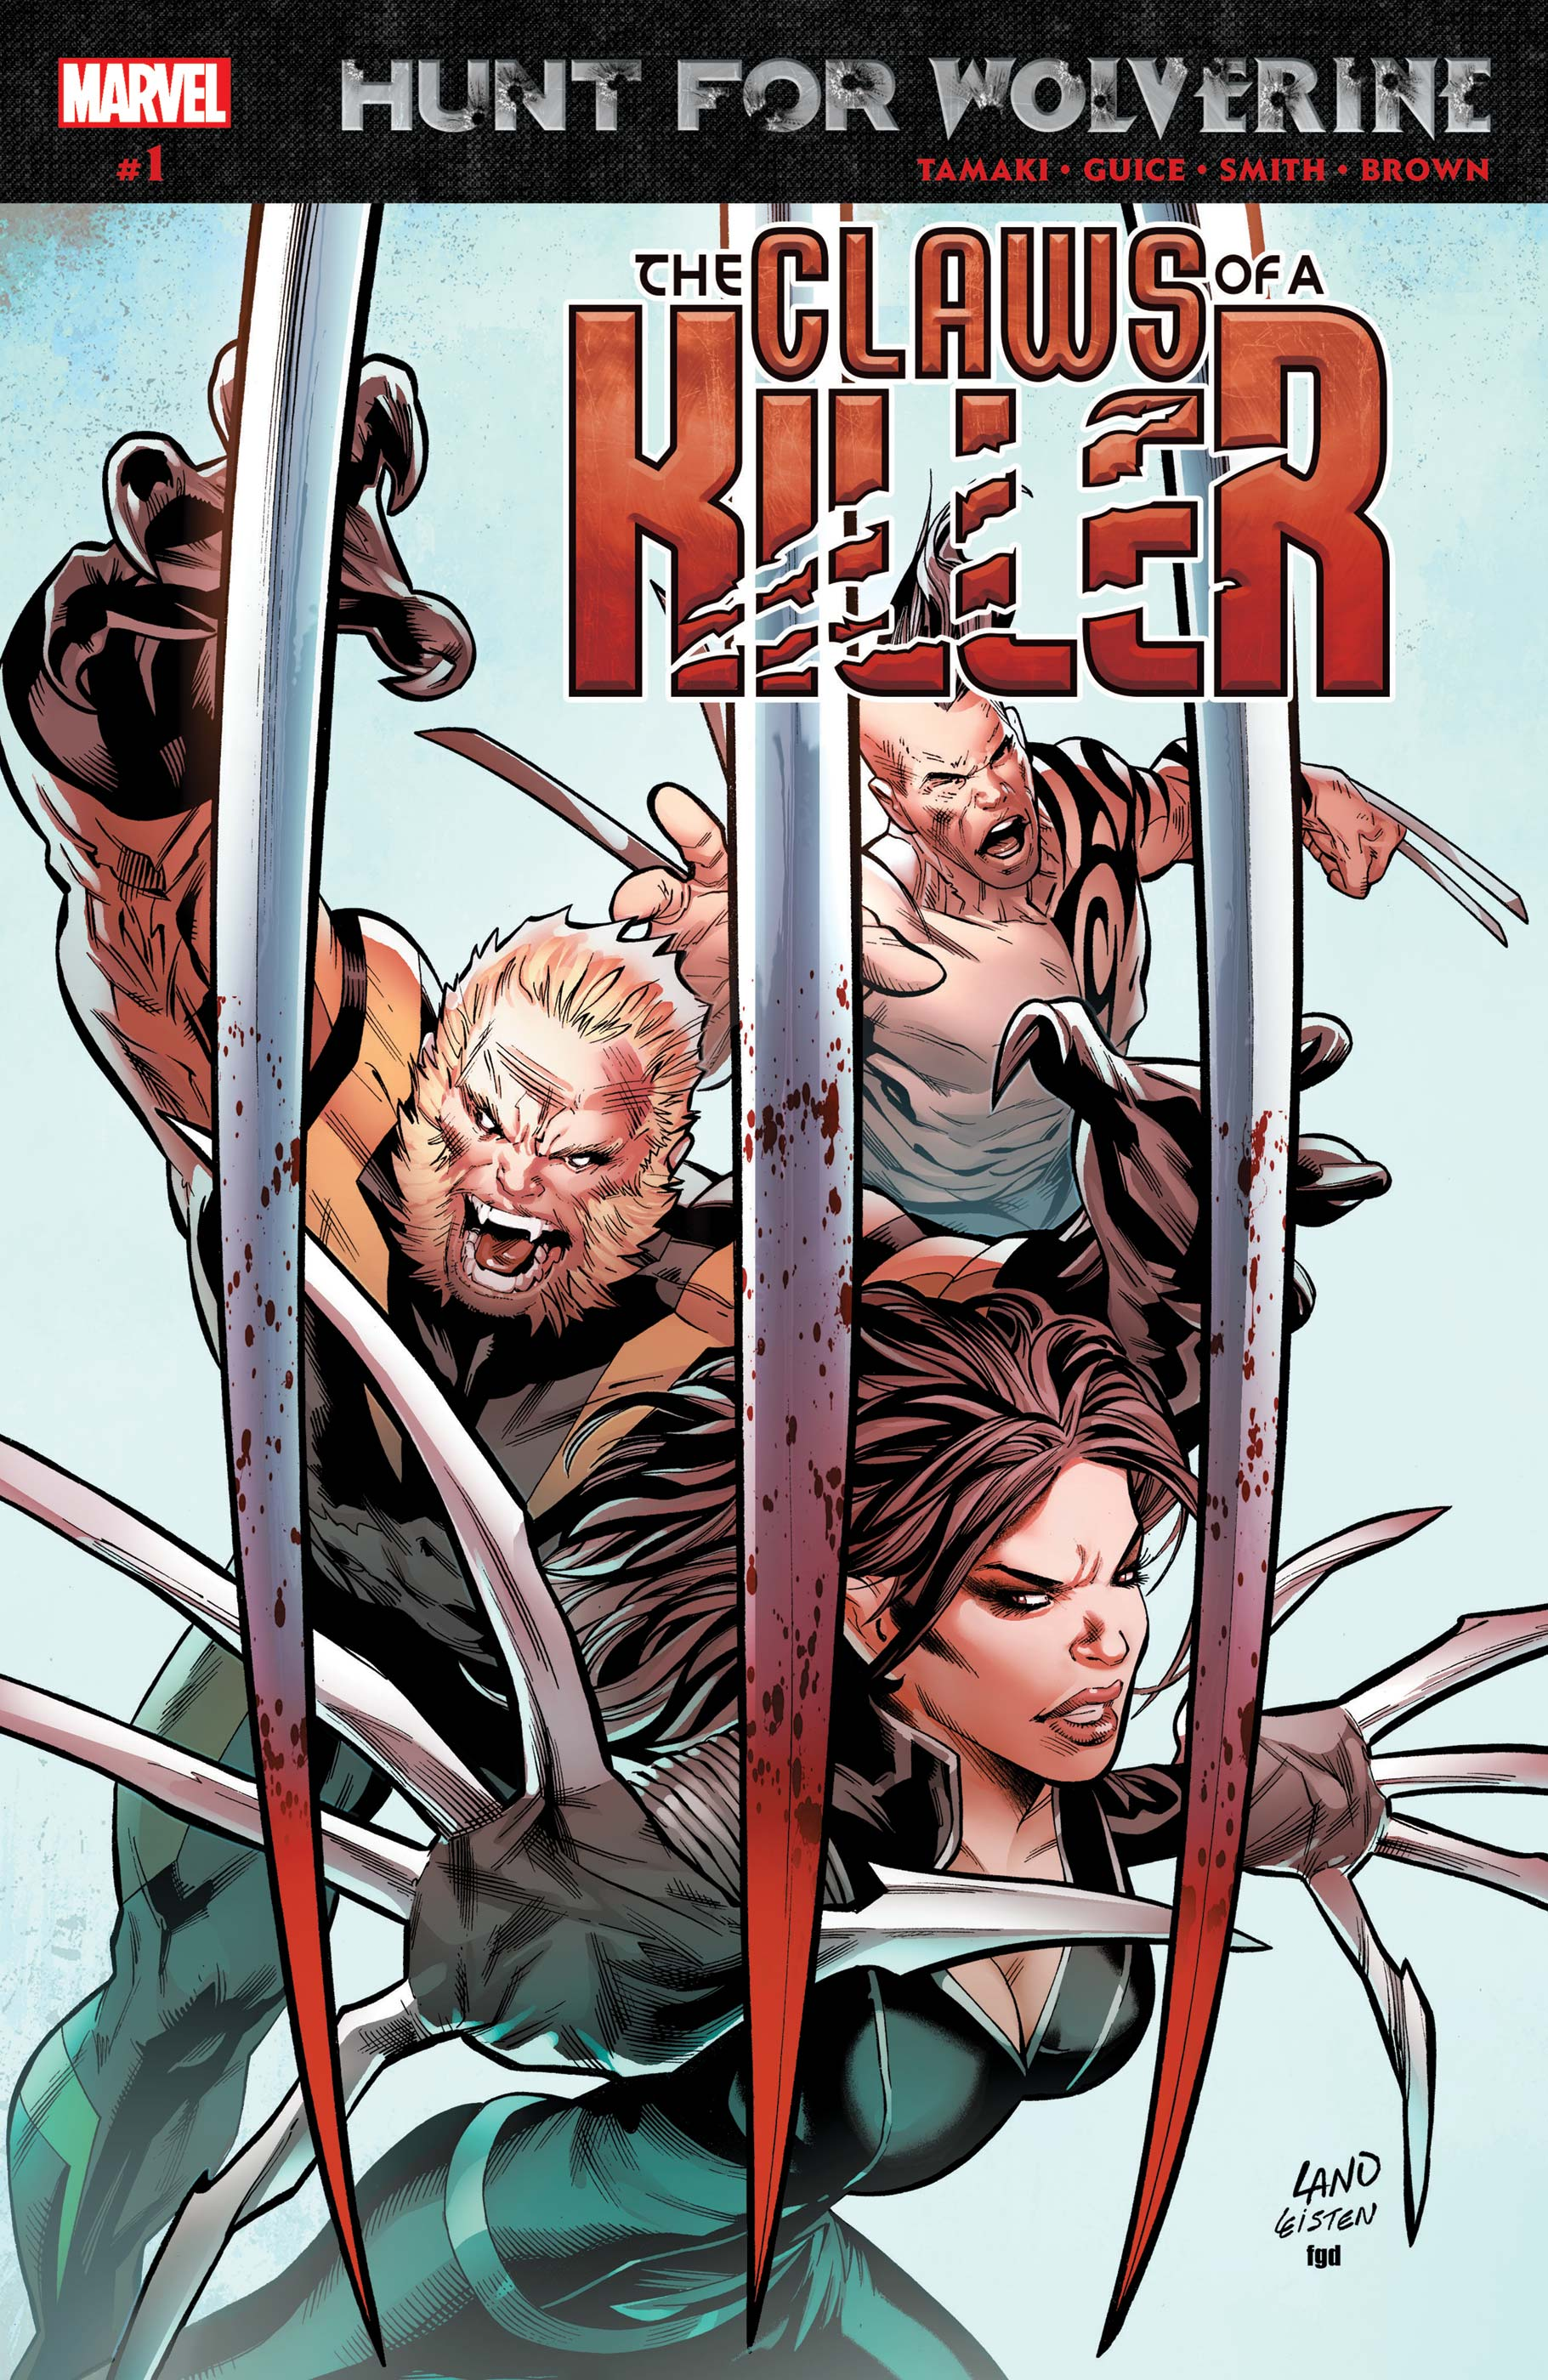 Hunt for Wolverine: Claws of a Killer (2018) #1